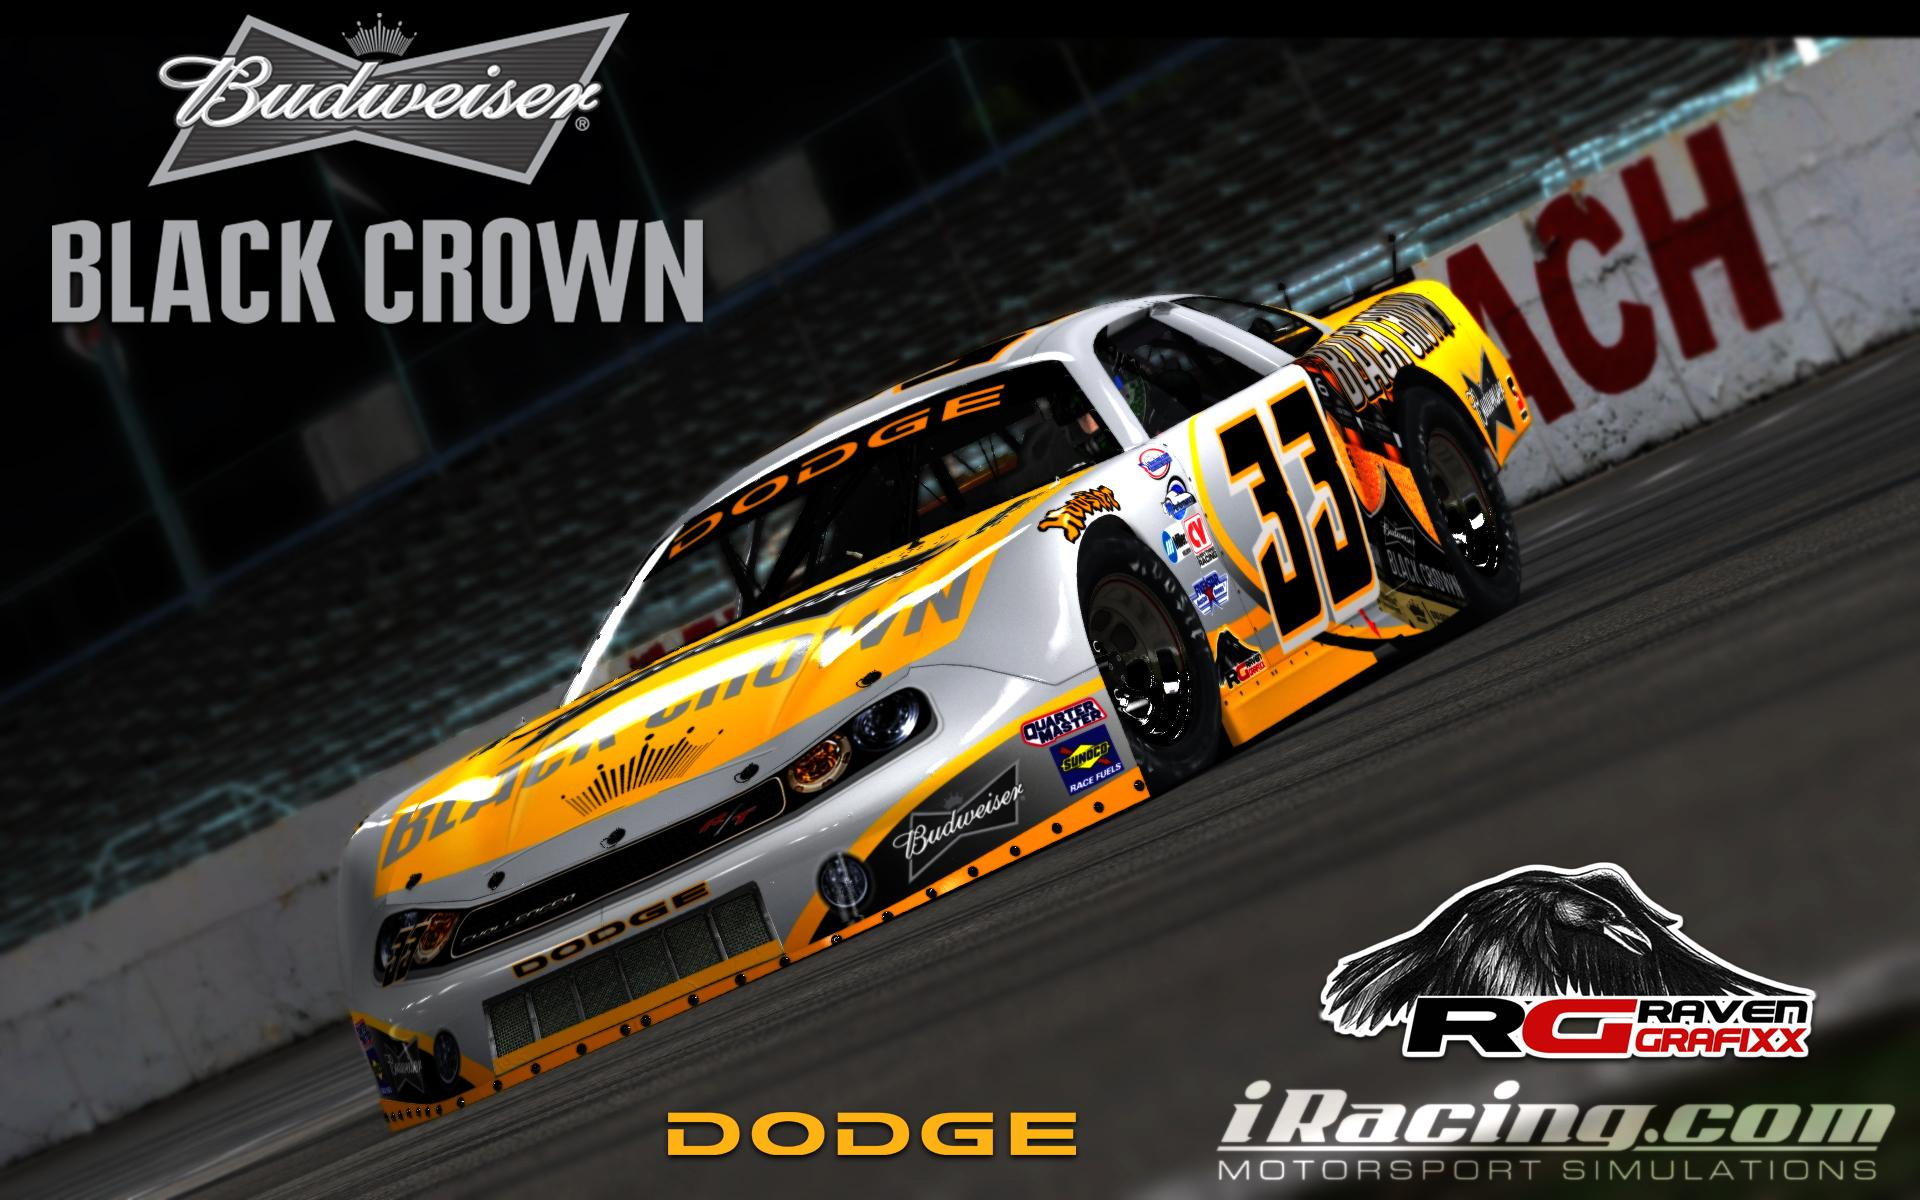 Preview of BlackCrown SLM 2048 v4 2017 by Doyle Lowrance